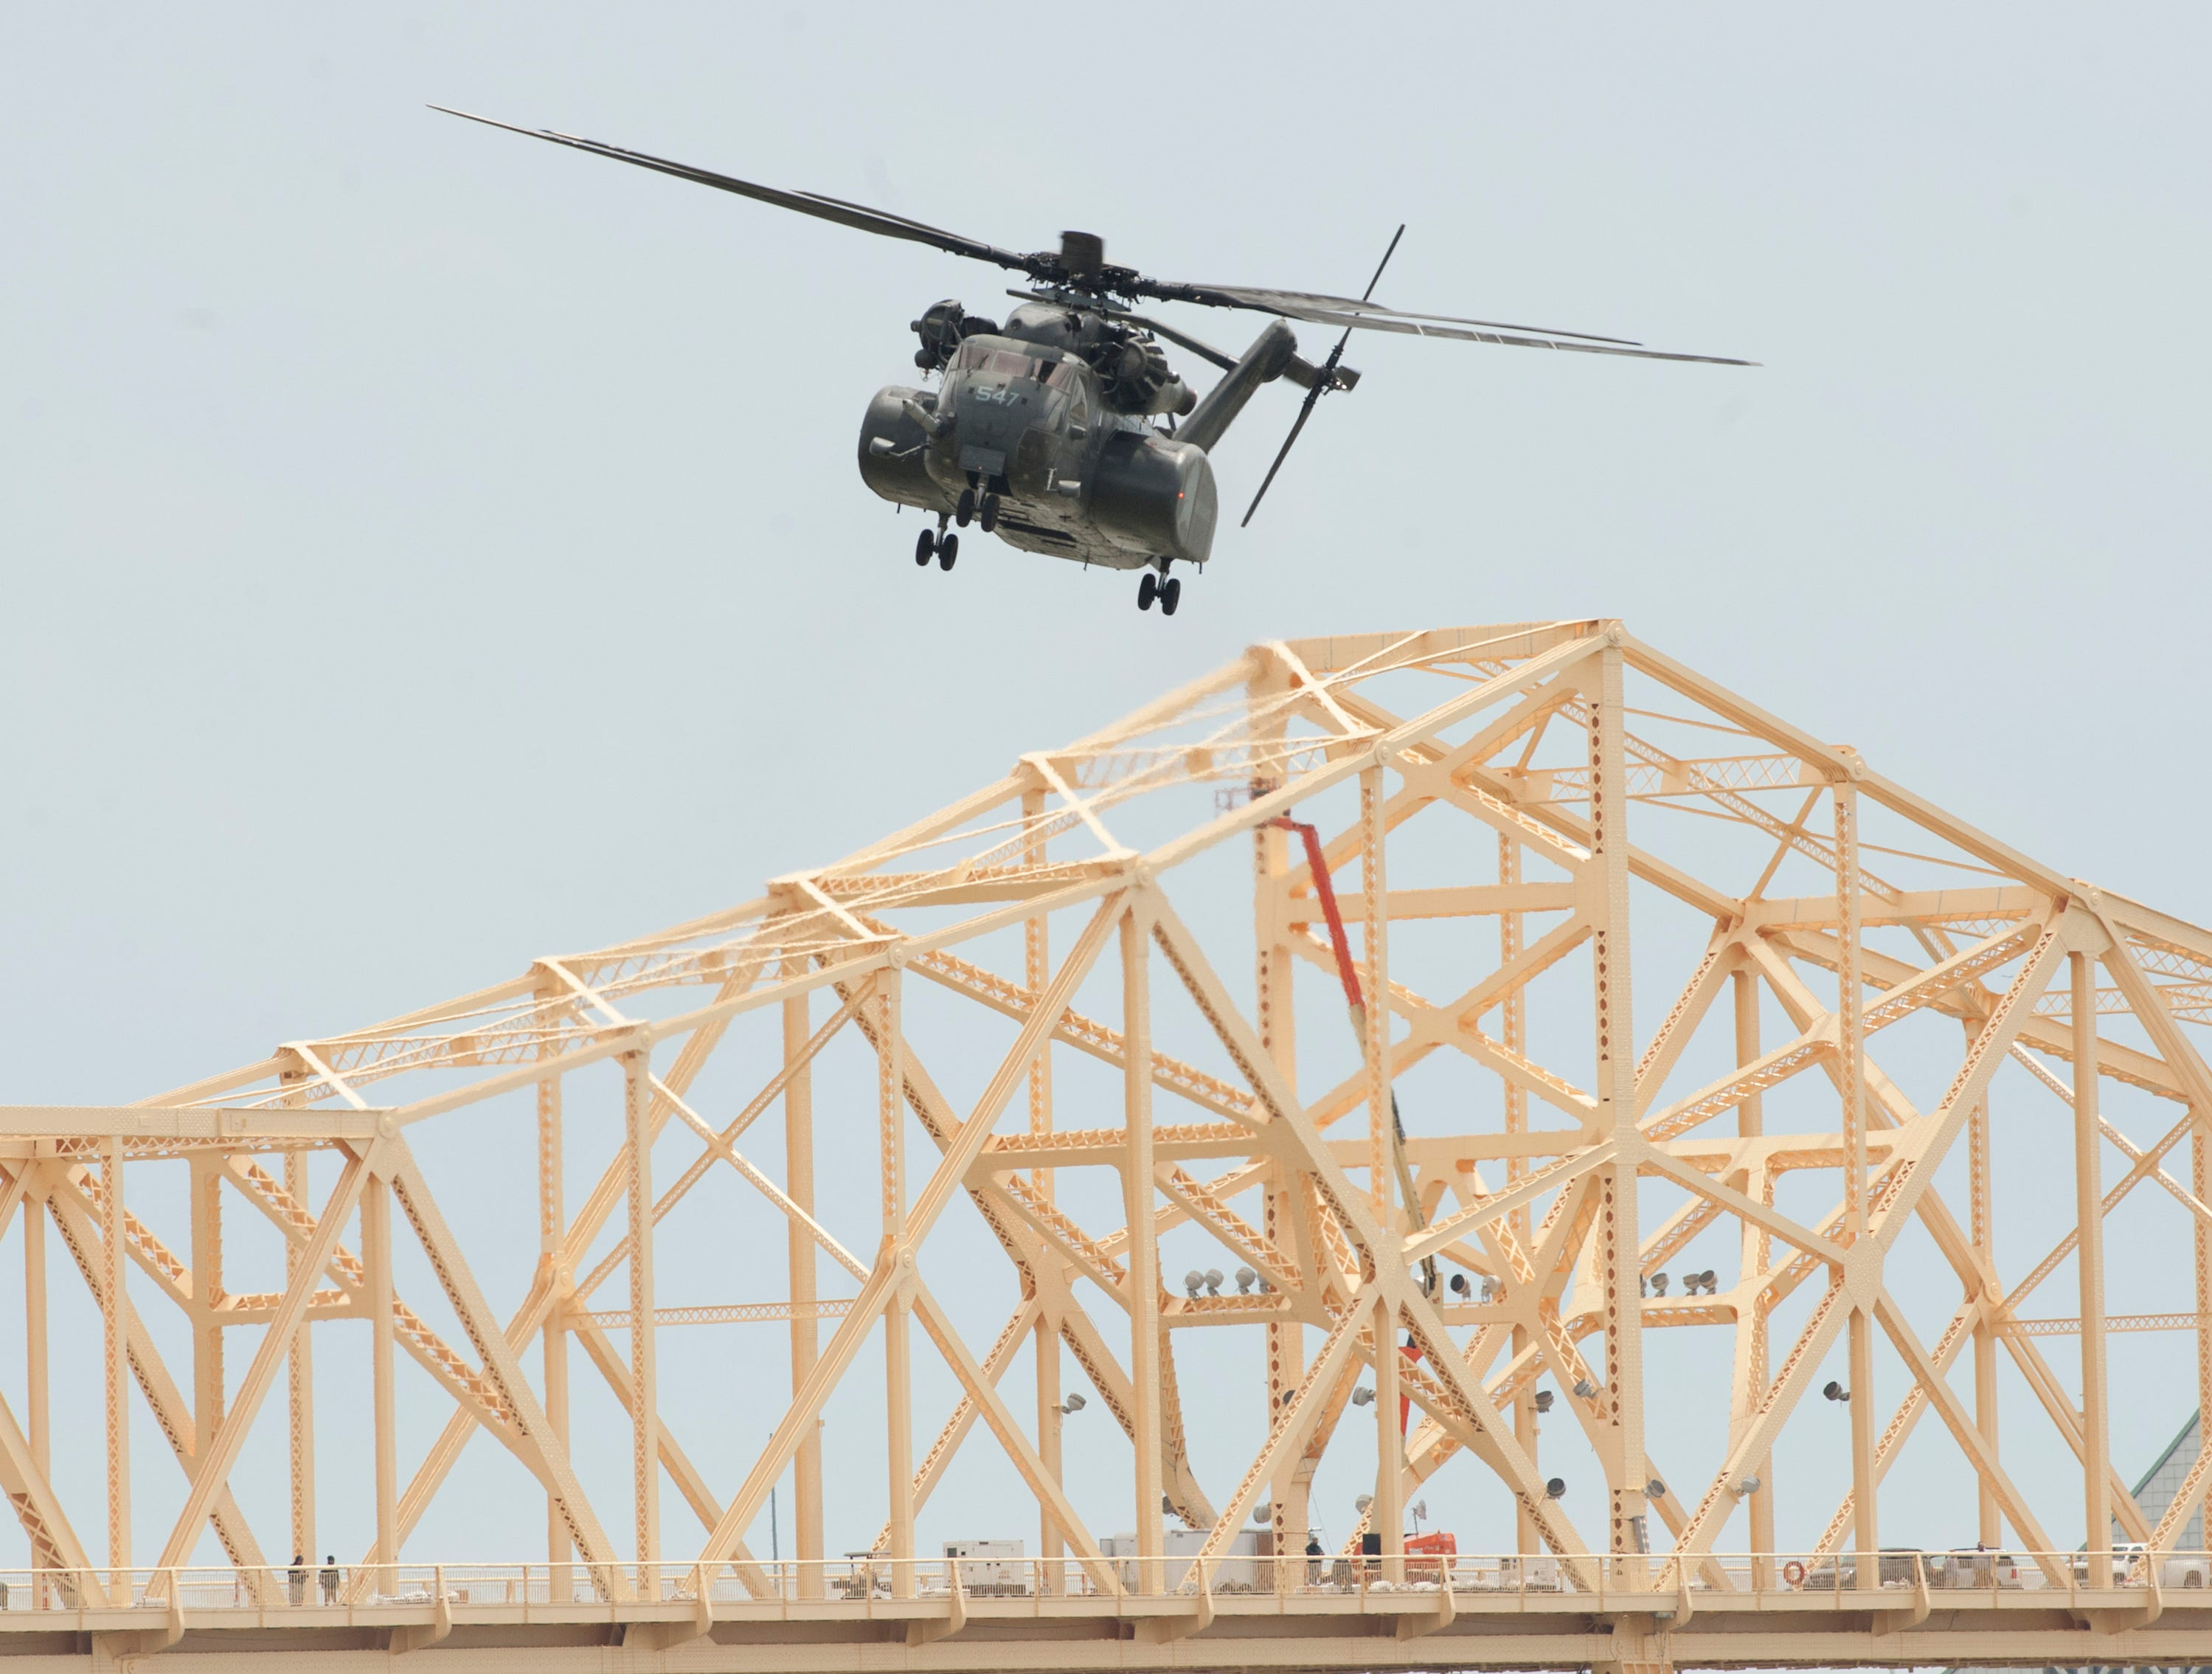 A U.S. Navy Vanguard helicopter hovers over the Second Street Bridge as it practices for the air show.12 April 2019